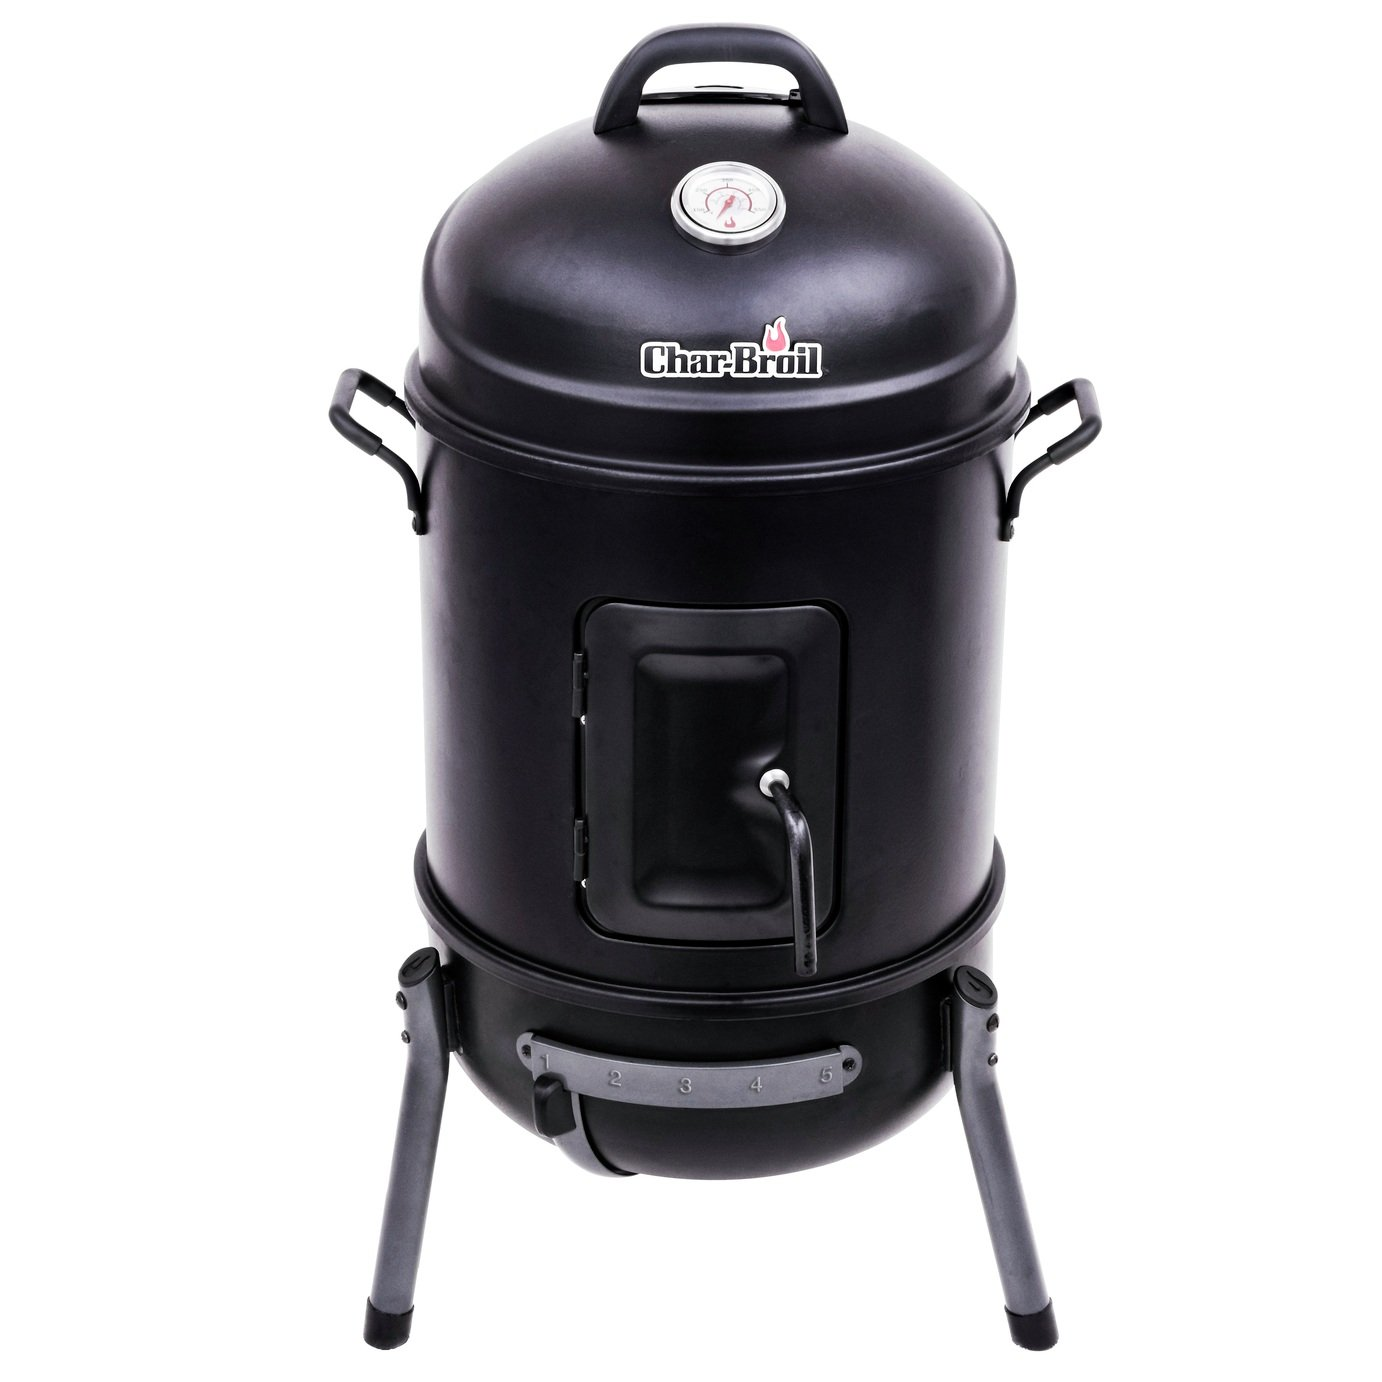 Char-Broil 140 871 Traditional Bullet Smoker BBQ